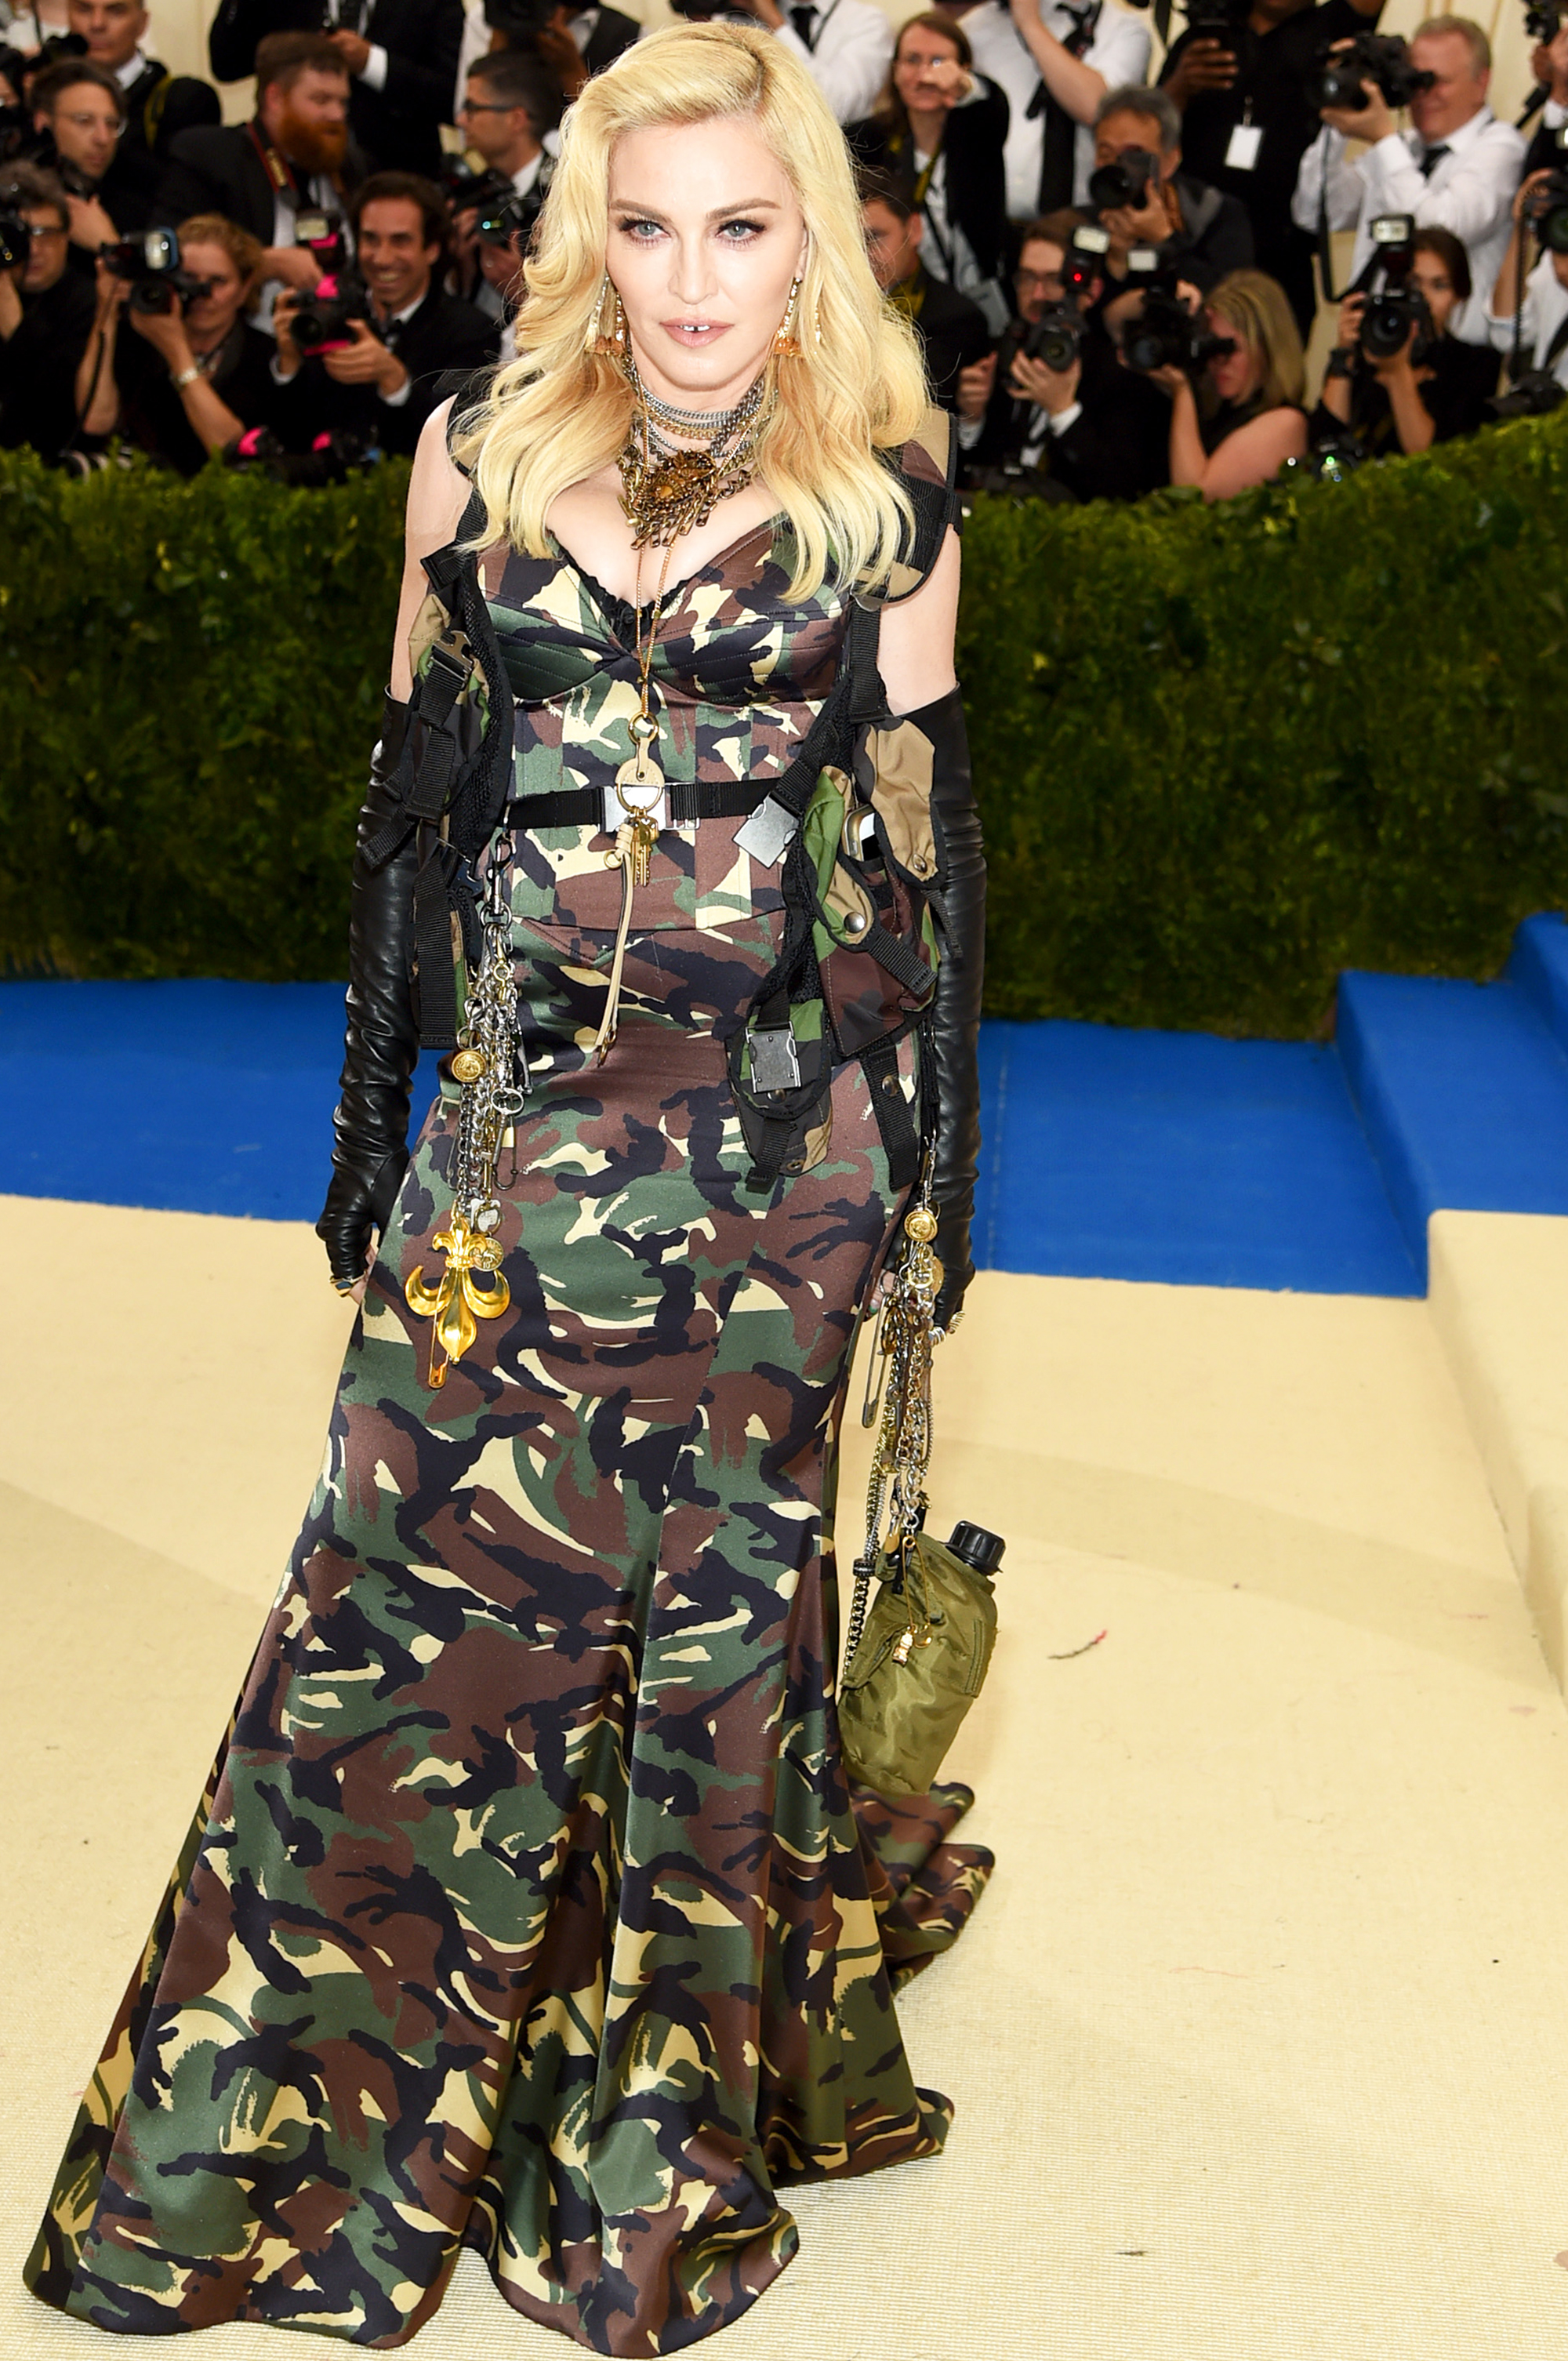 Madonna attends The Metropolitan Museum of Art's Costume Institute benefit gala celebrating the opening of the Rei Kawakubo/Comme des Garçons: Art of the In-Between exhibition in New York City, on May 1, 2017.